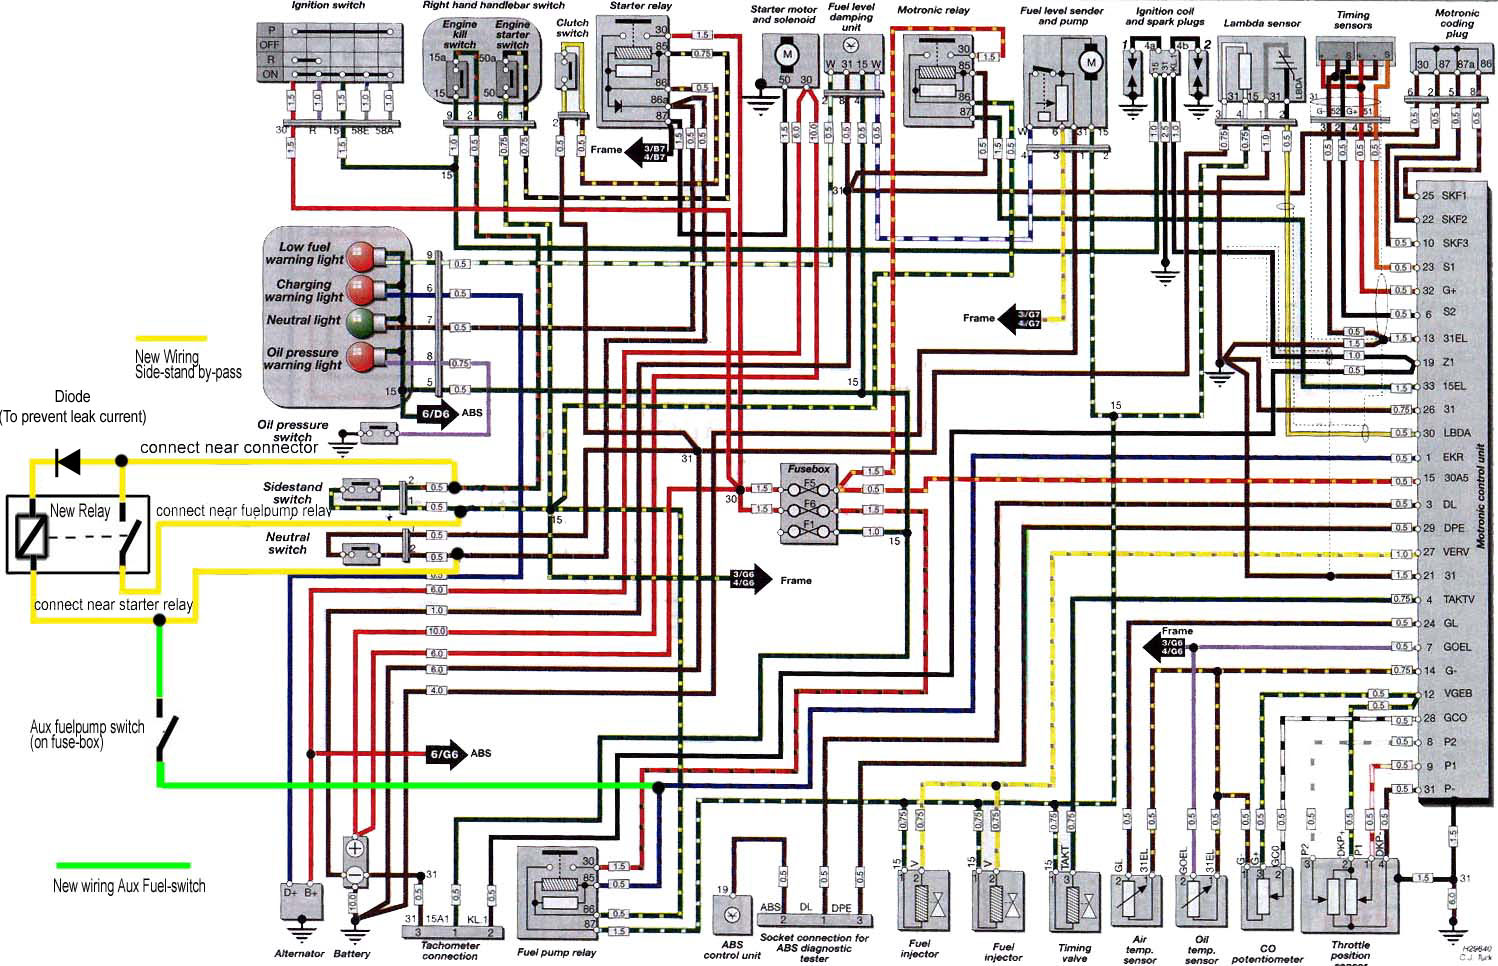 2004 Infiniti G35 Fuse Box Wiring Library Ipdm Diagram R1150r Tech Info Bmw R1150rt